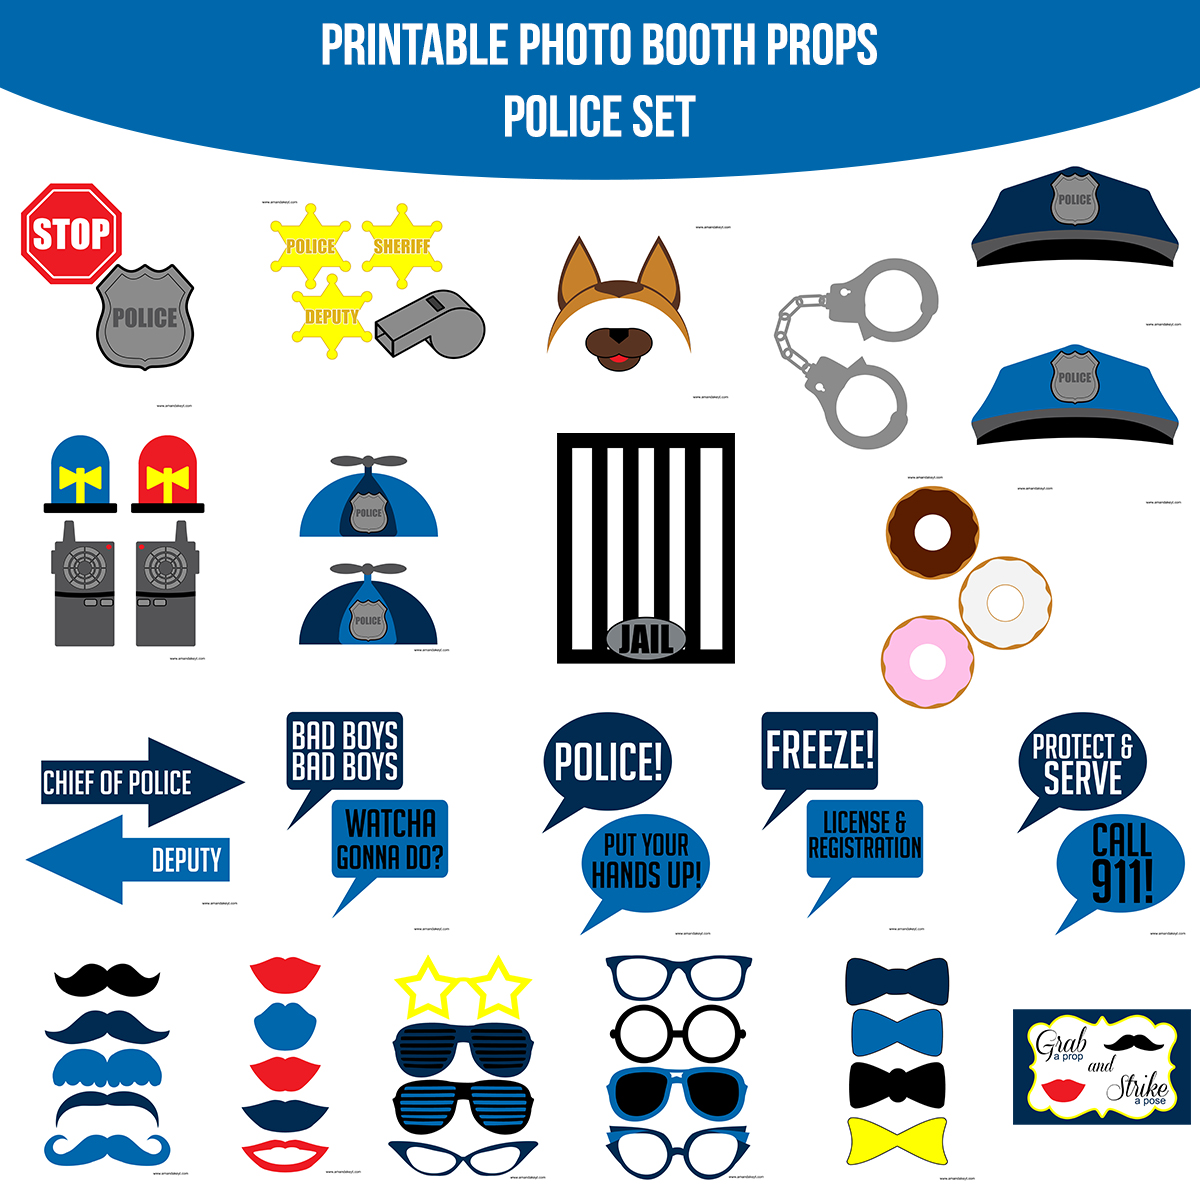 See the Set - To View The Whole Police Printable Photo Booth Prop Set Click Here